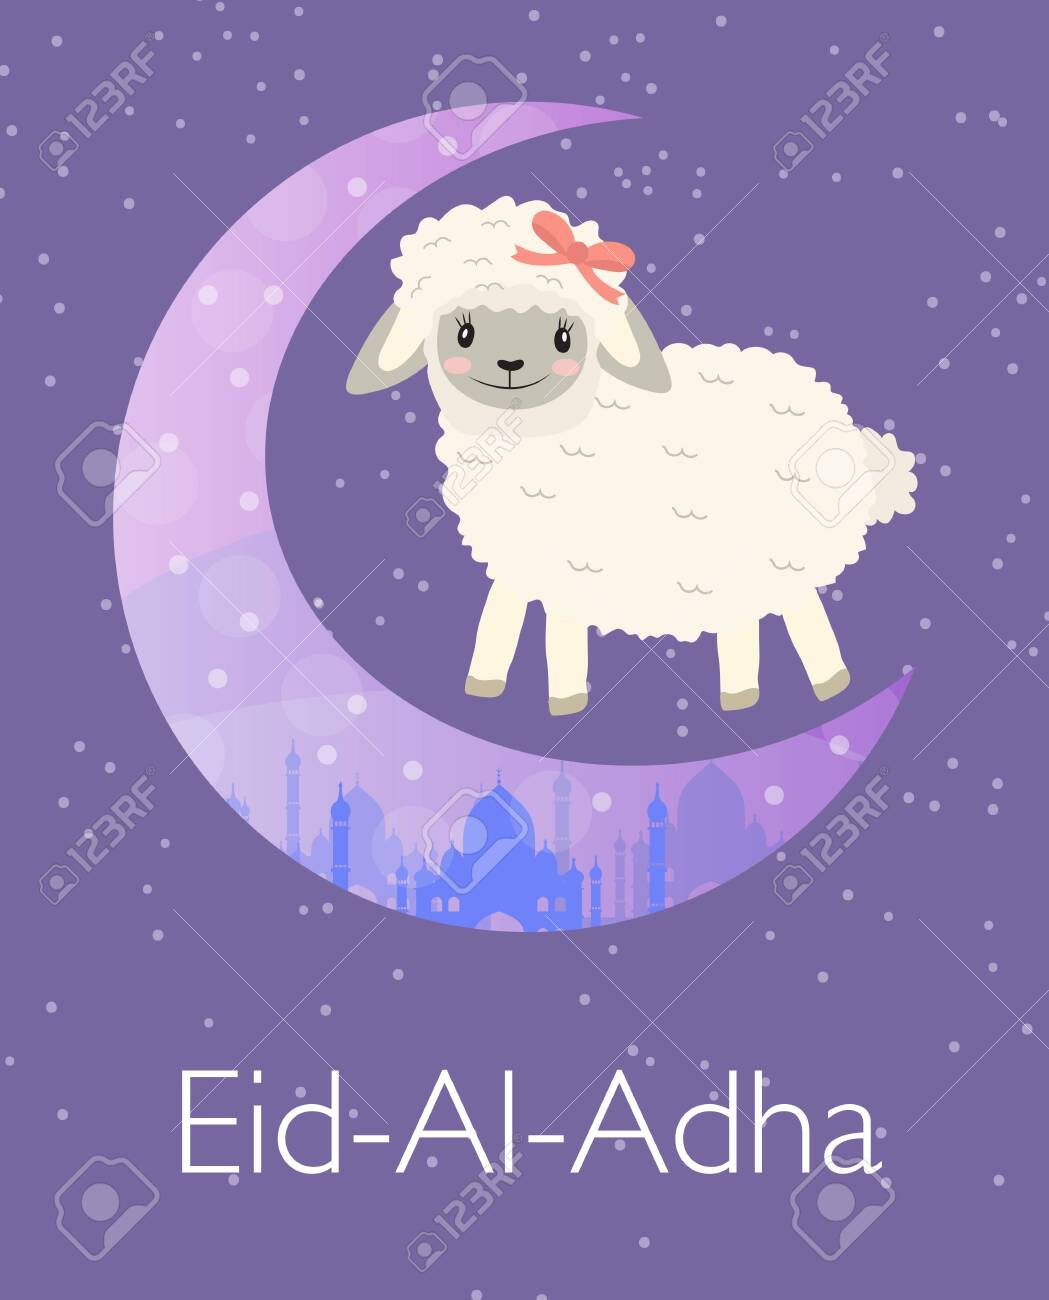 Eid Ul Adha Funny Greeting Cards : funny, greeting, cards, Greeting, Little, Sheep, Art.., Royalty, Cliparts,, Vectors,, Stock, Illustration., Image, 126547242.